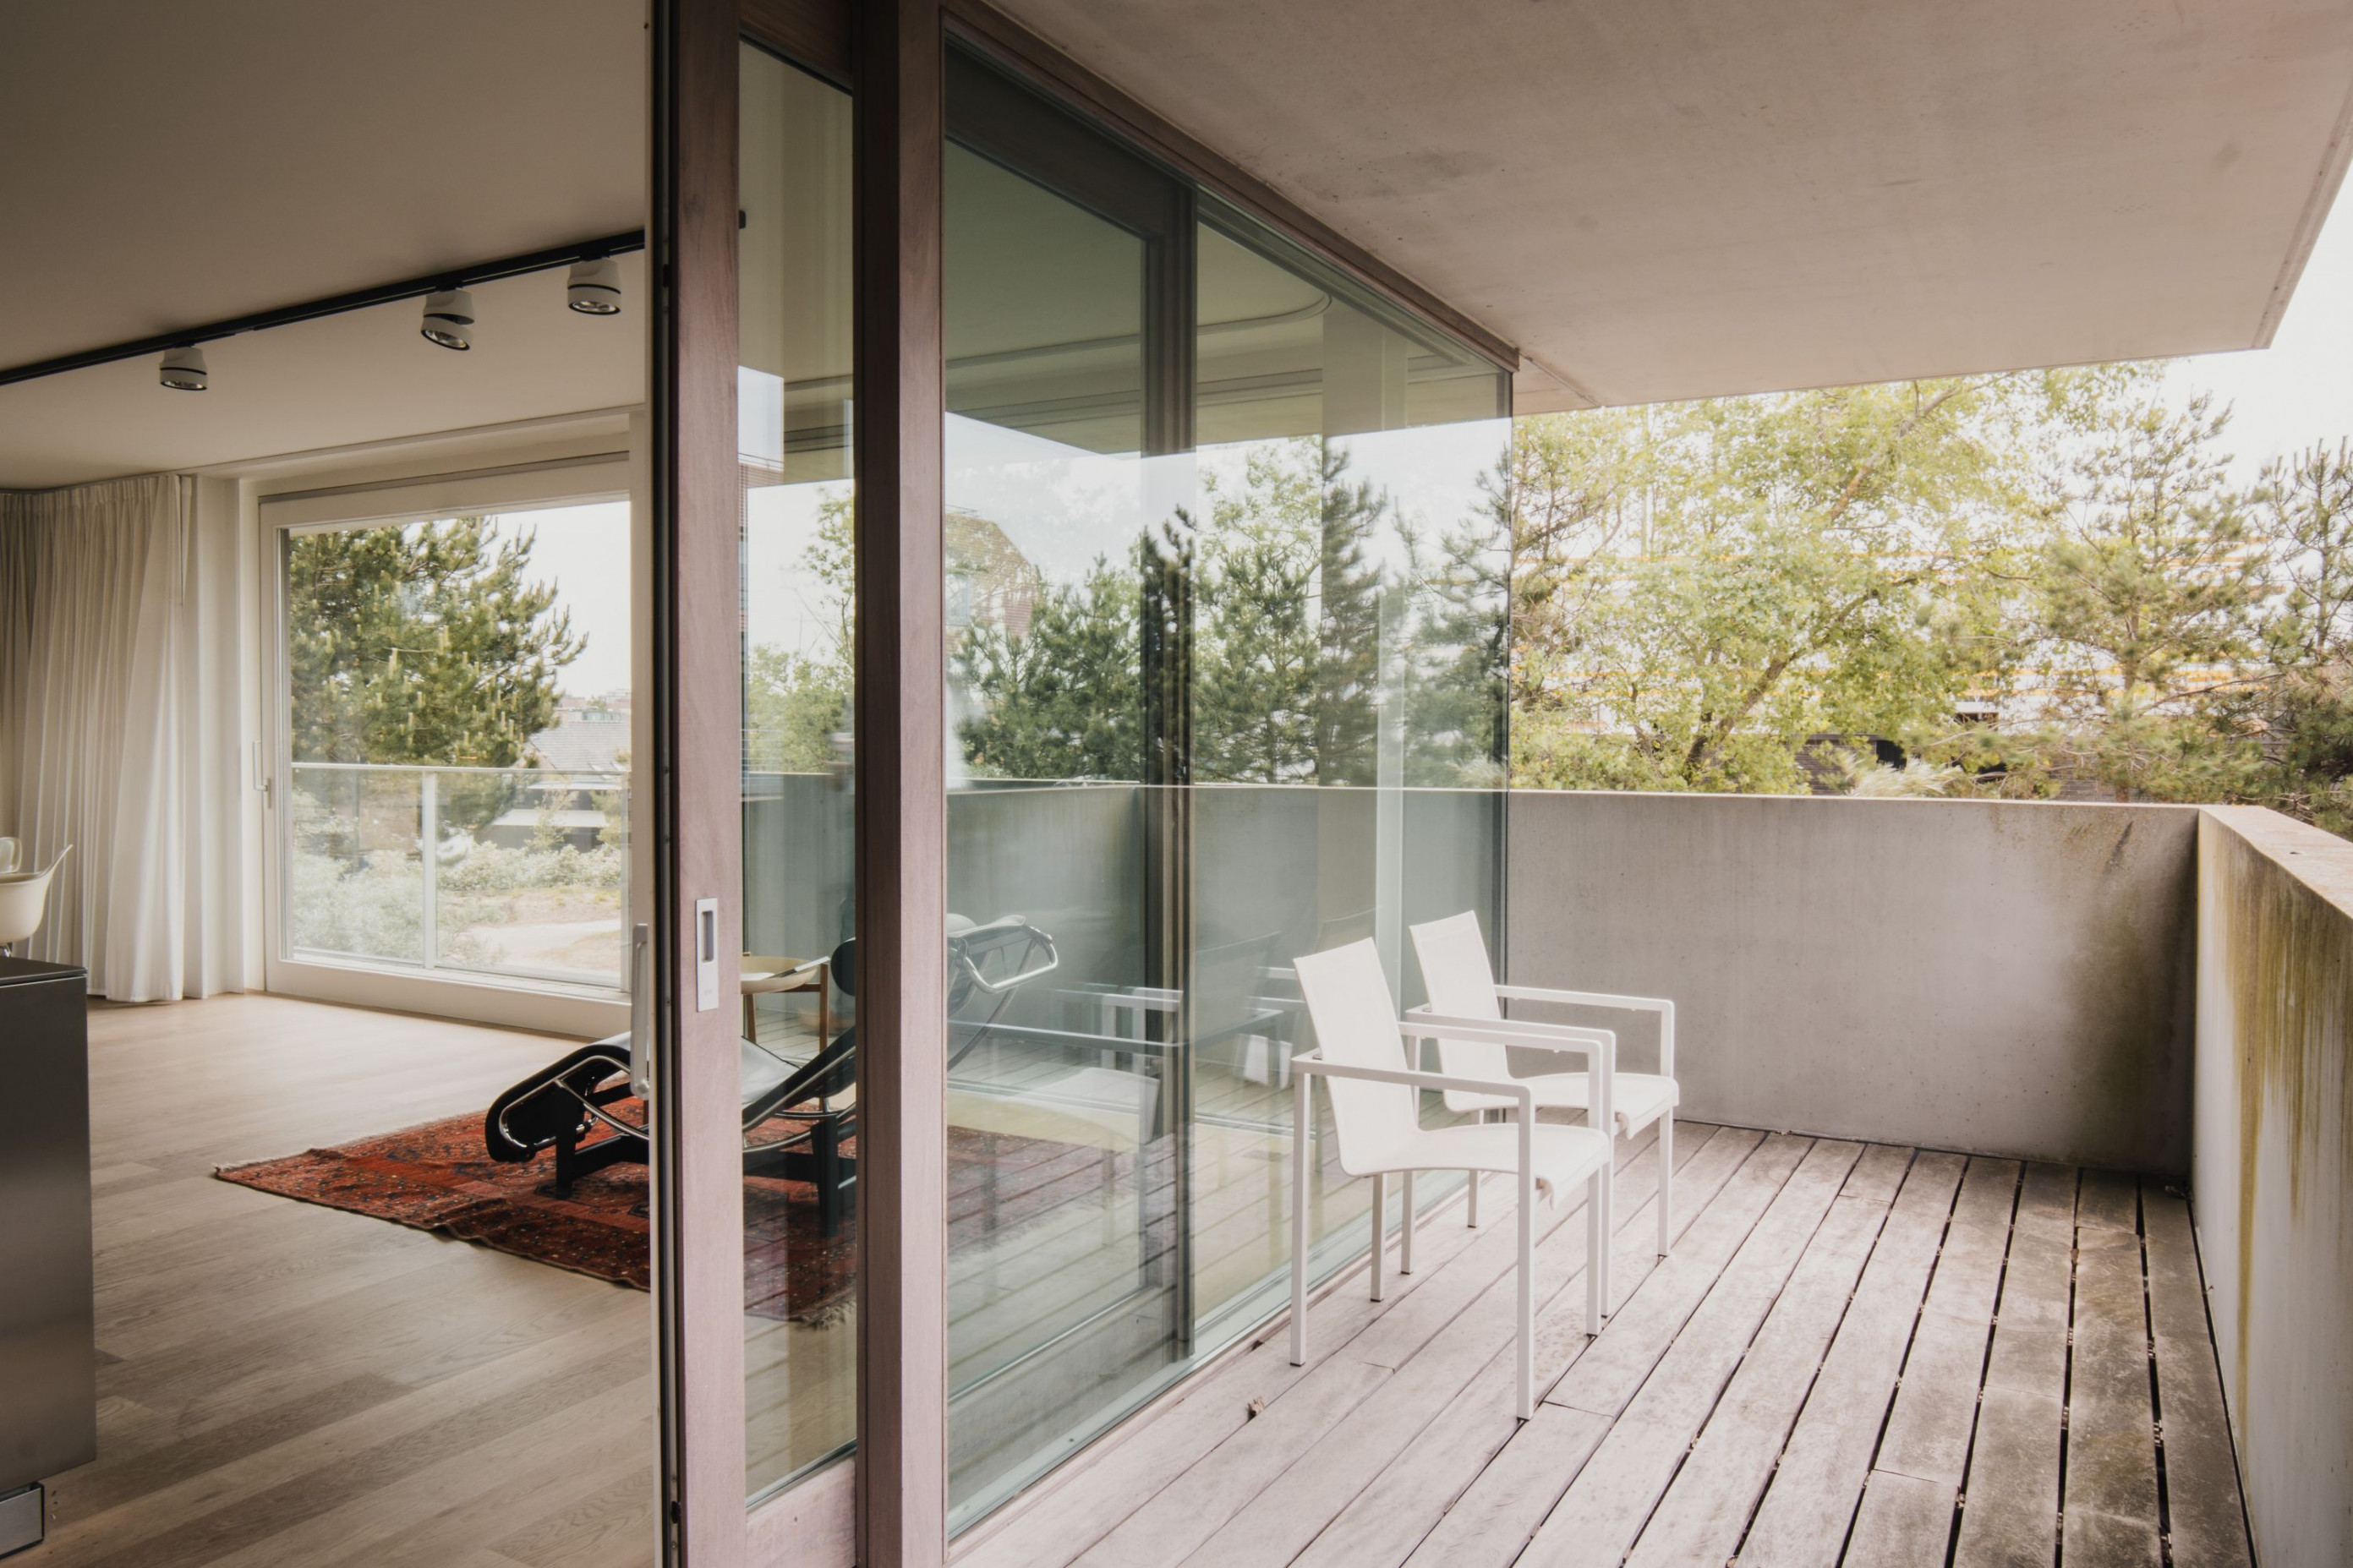 Duinappartement - Arne Jacobsen - Pic by Dayo Clinckspoor2